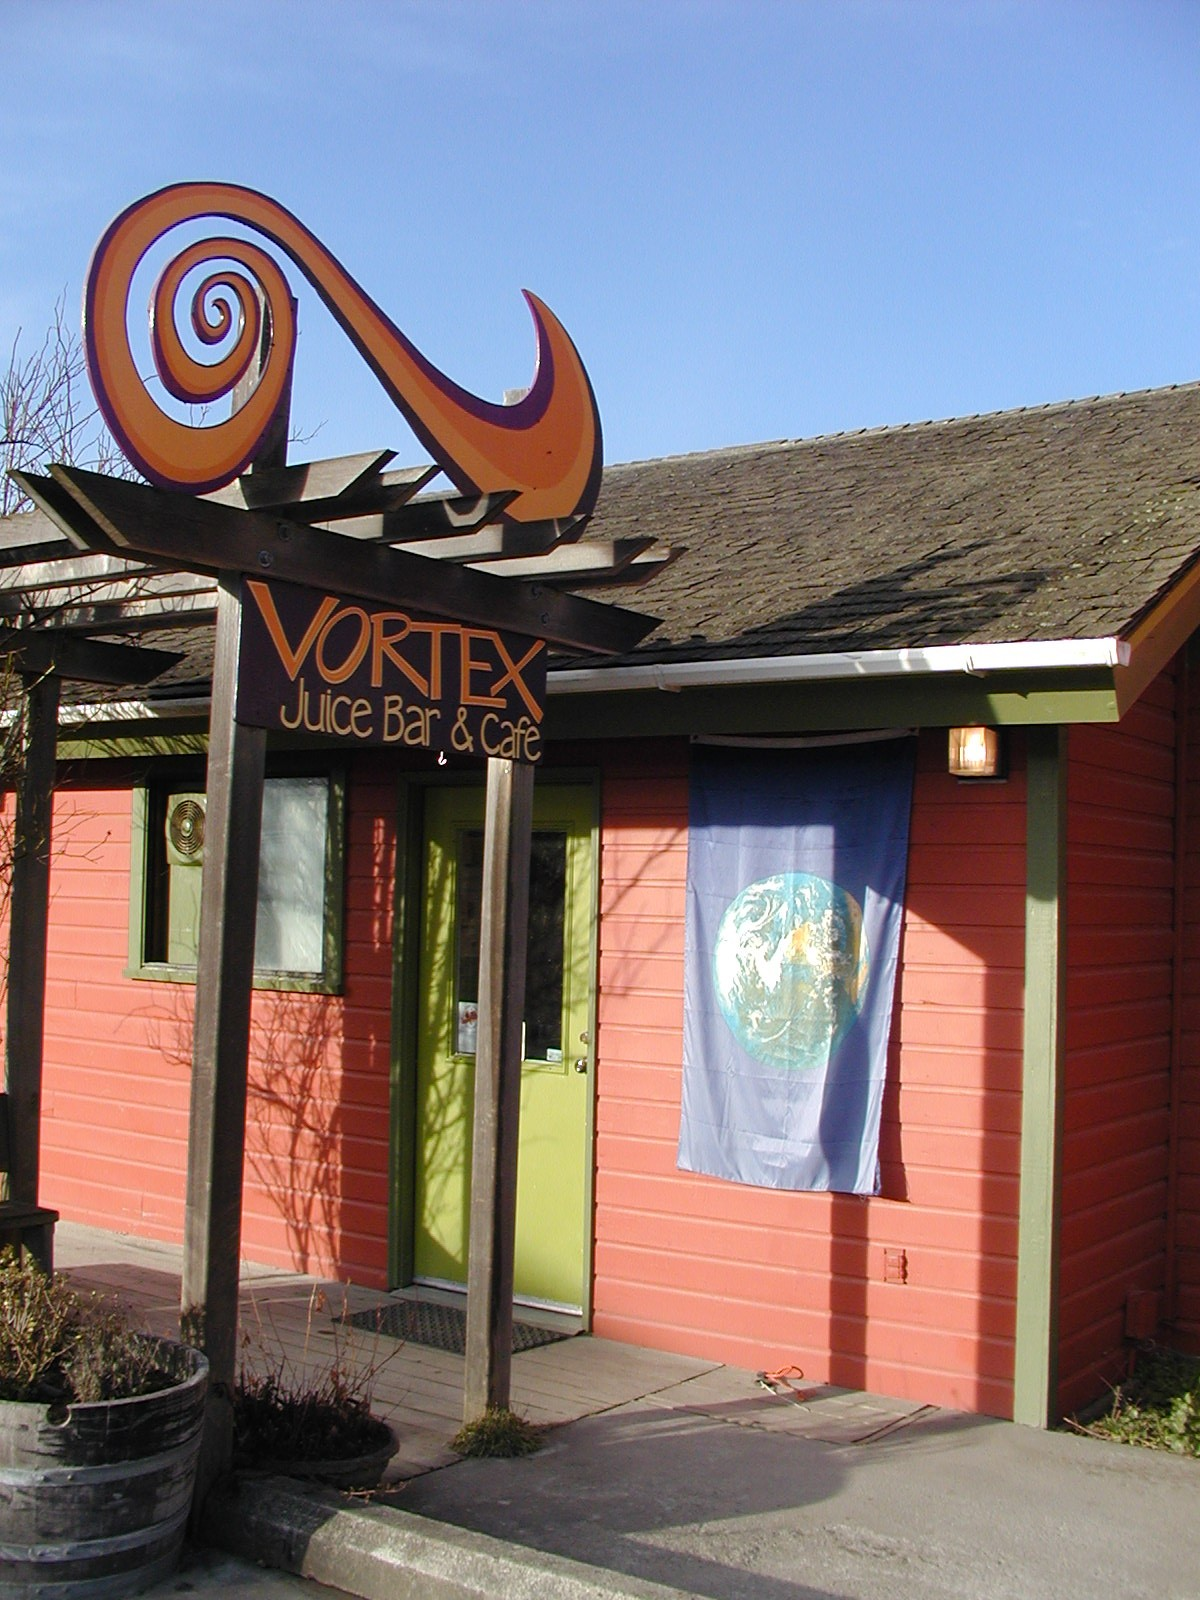 Vortex Juice Bar and Cafe on Lopez Island Washington